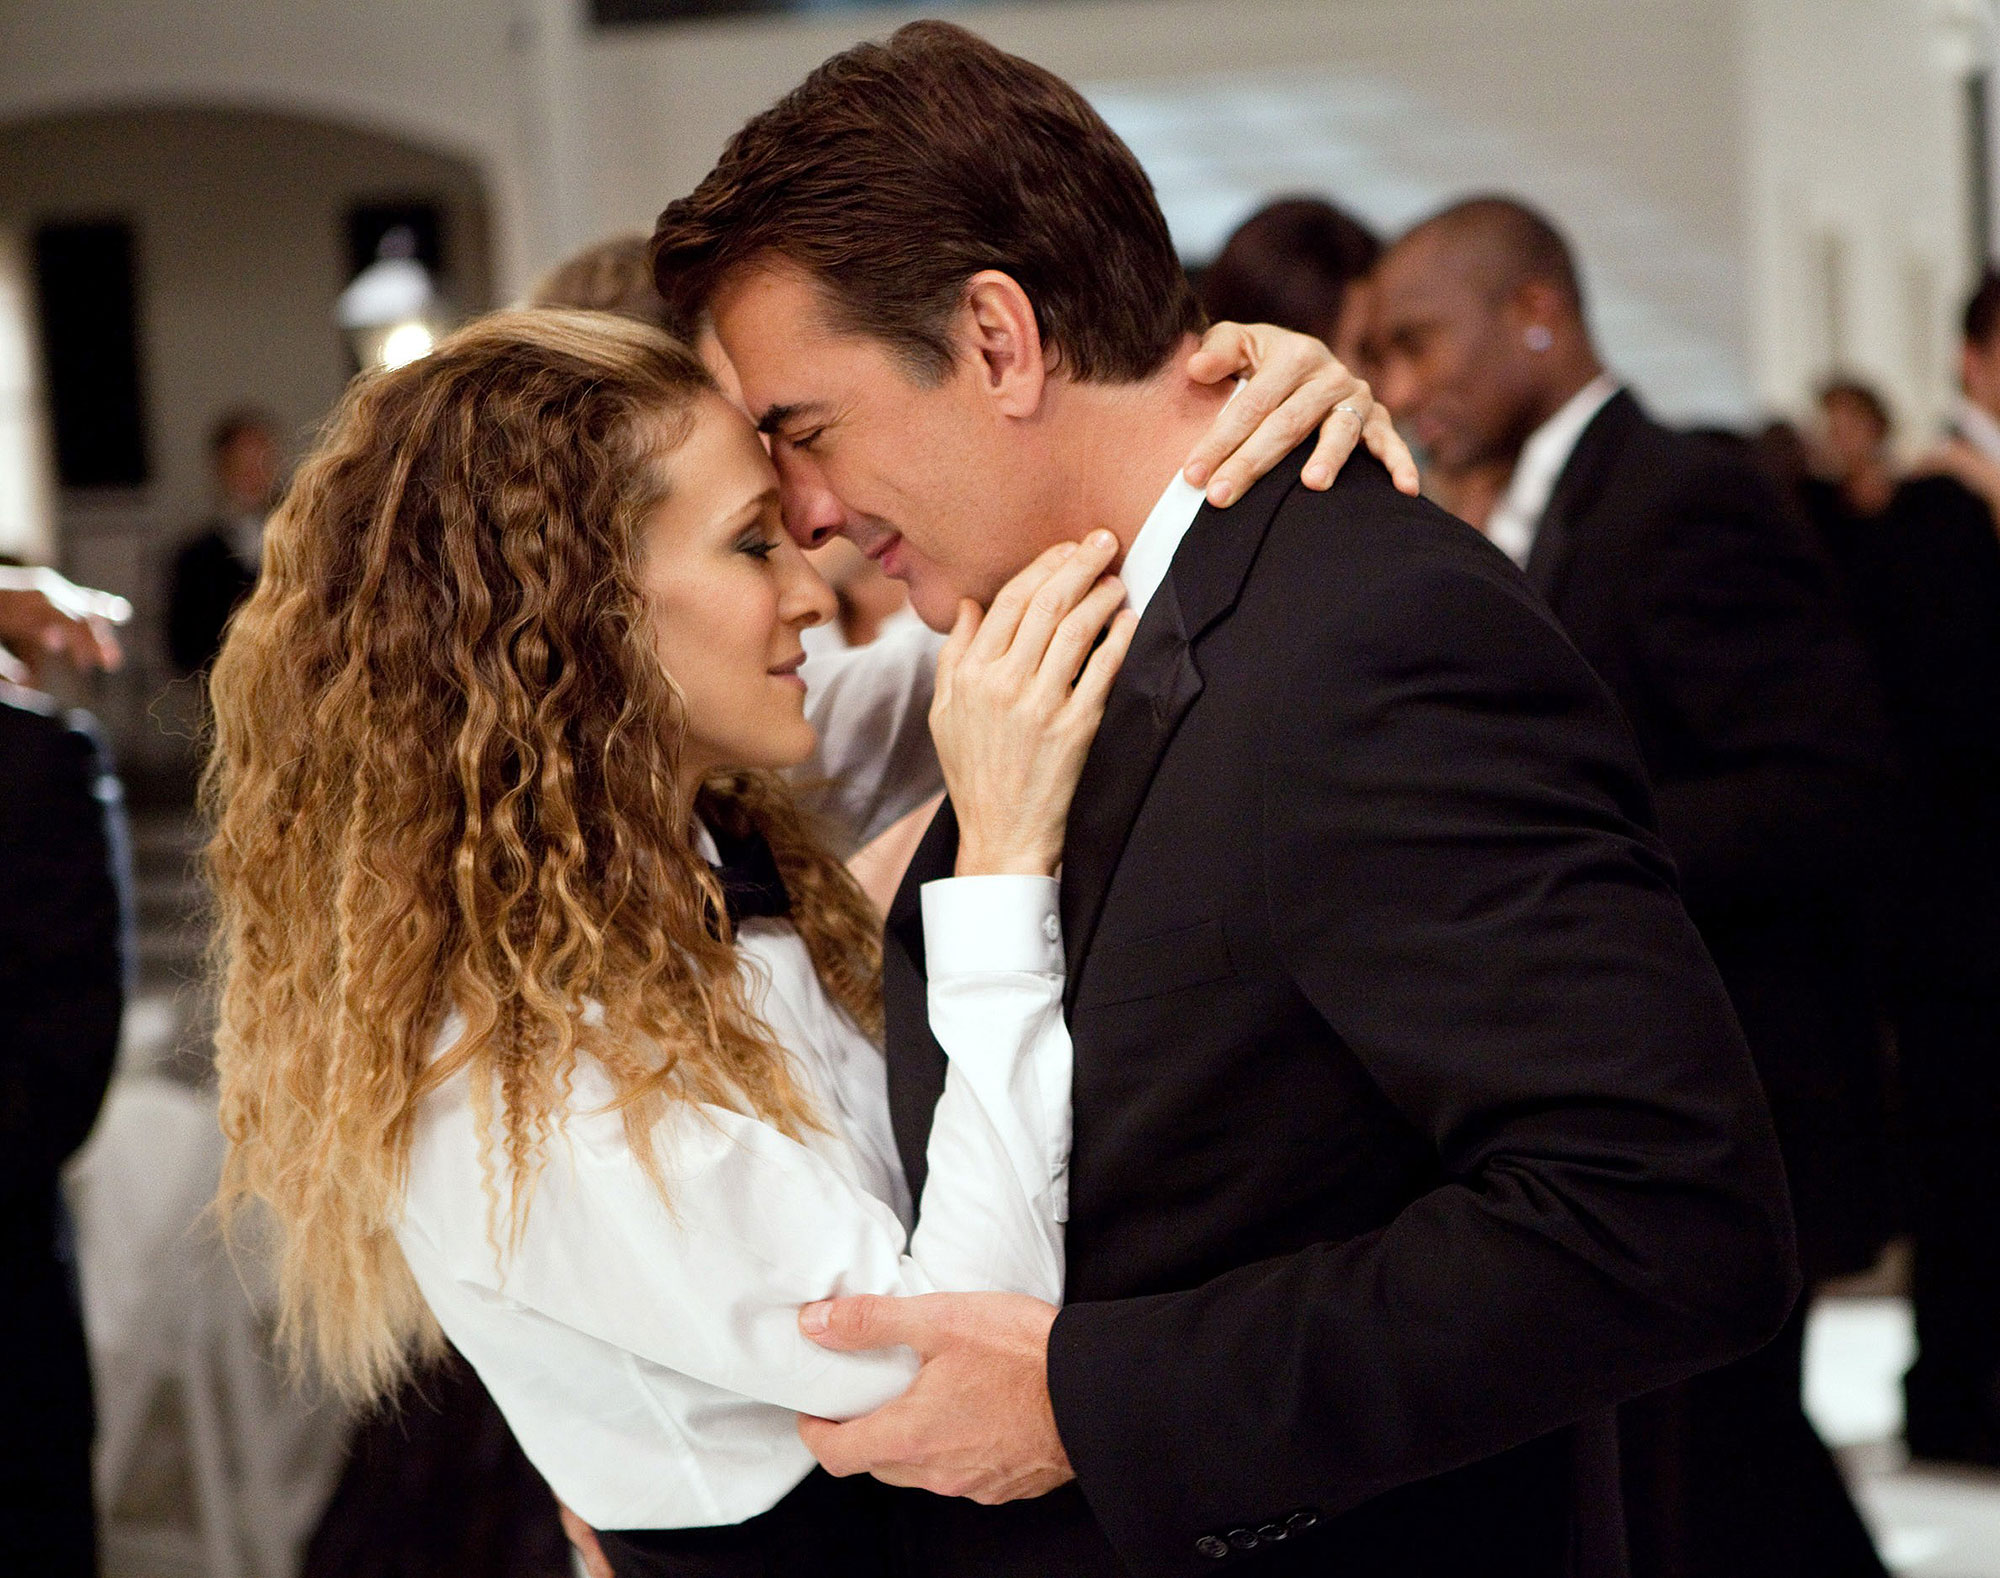 SEX AND THE CITY 2, from left: Sarah Jessica Parker, Chris Noth, 2010. ph: Craig Blankenhorn/©Warner